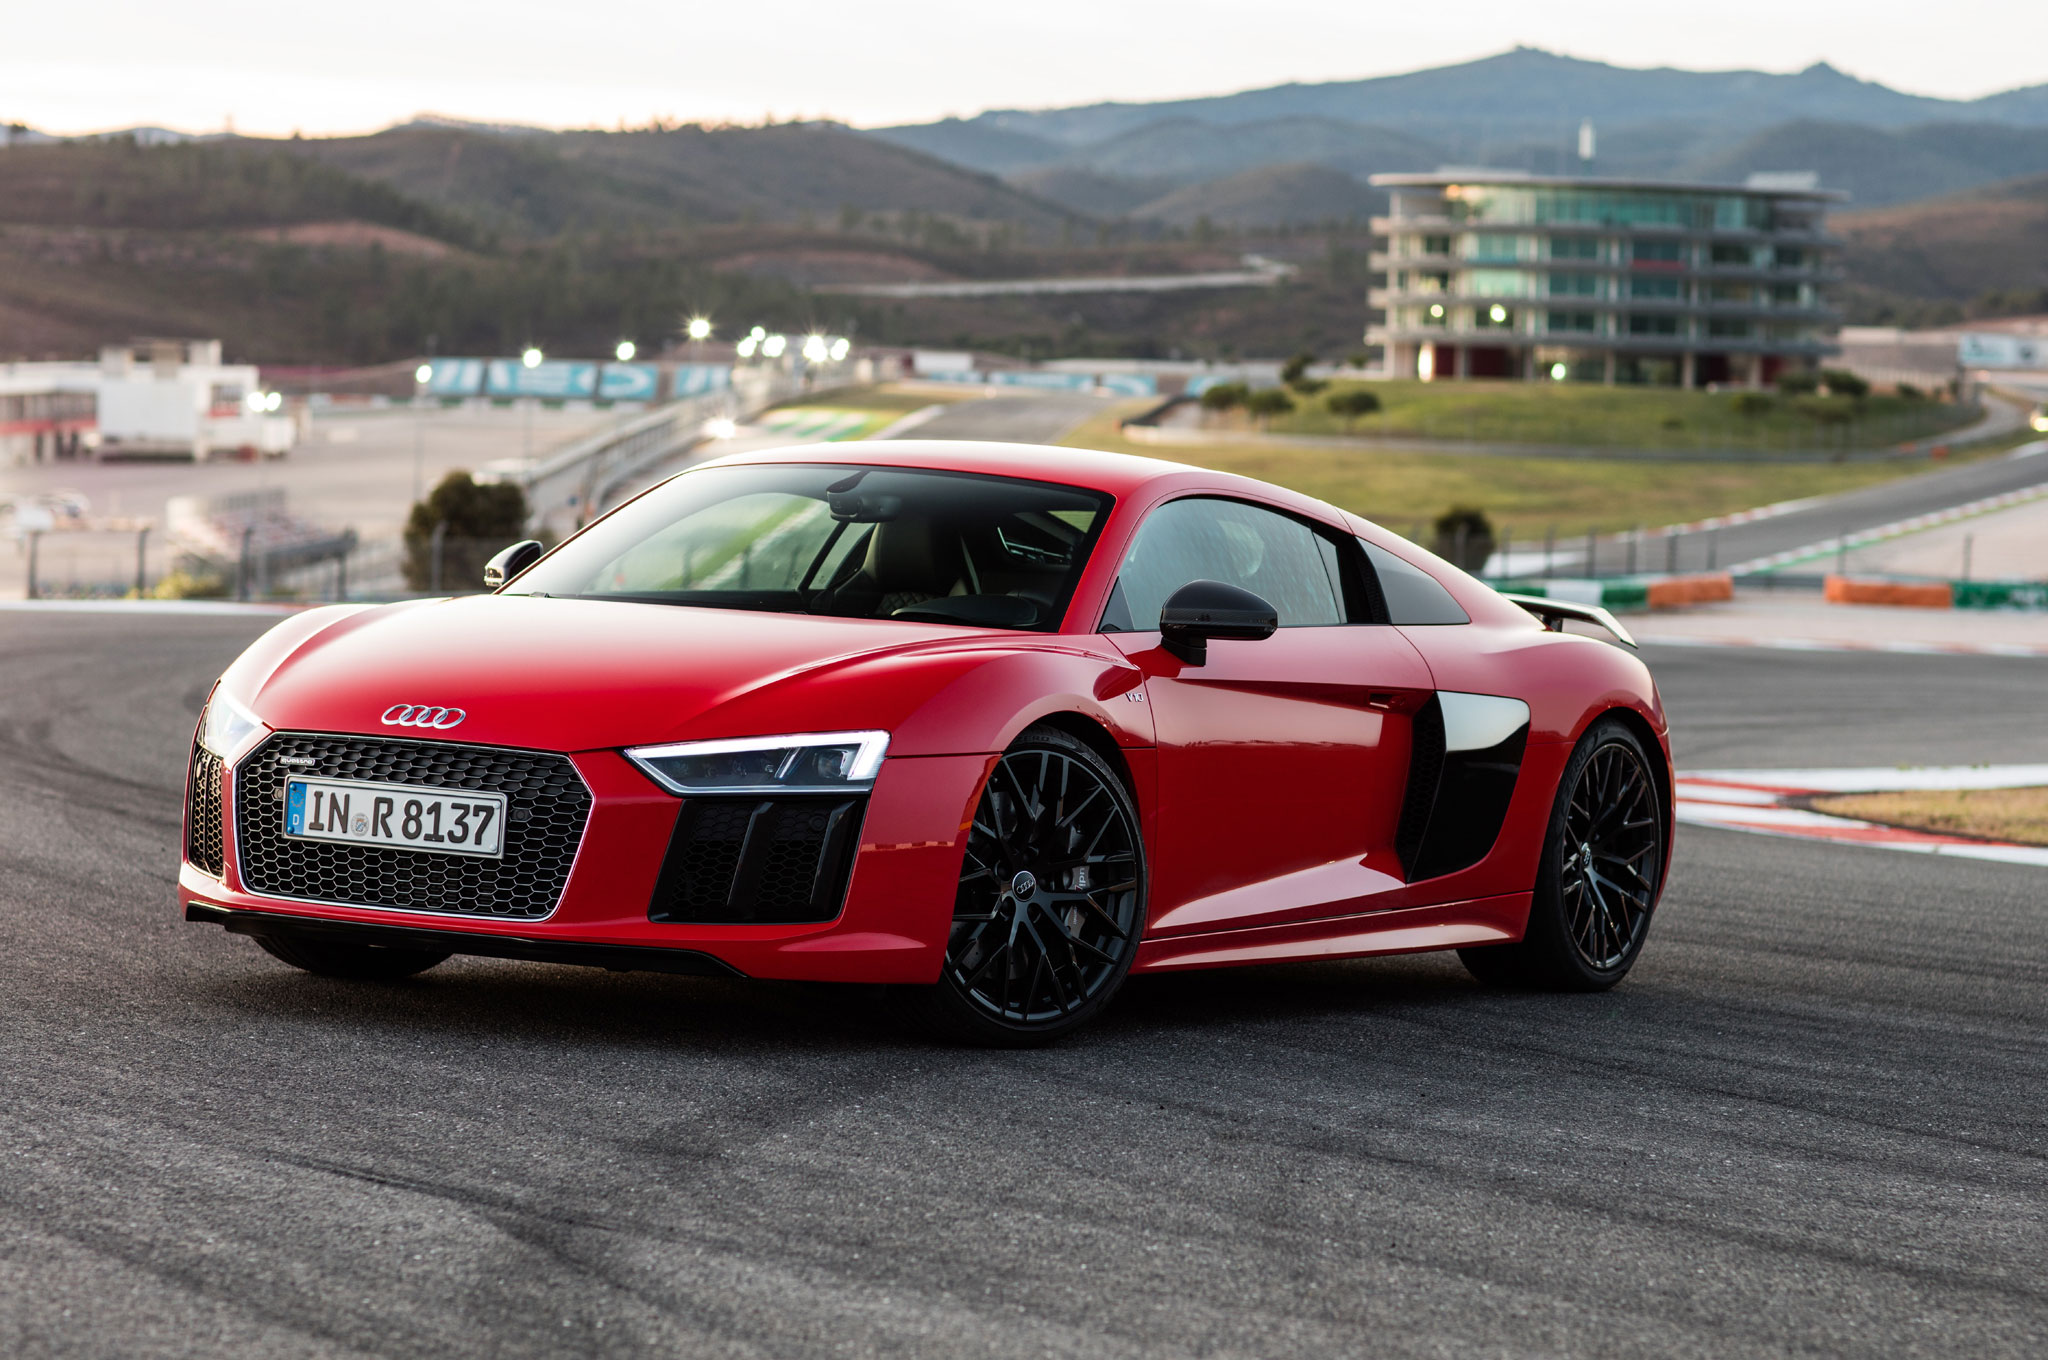 2017 Audi R8 Priced From $164,150, R8 V10 Plus from $191,150